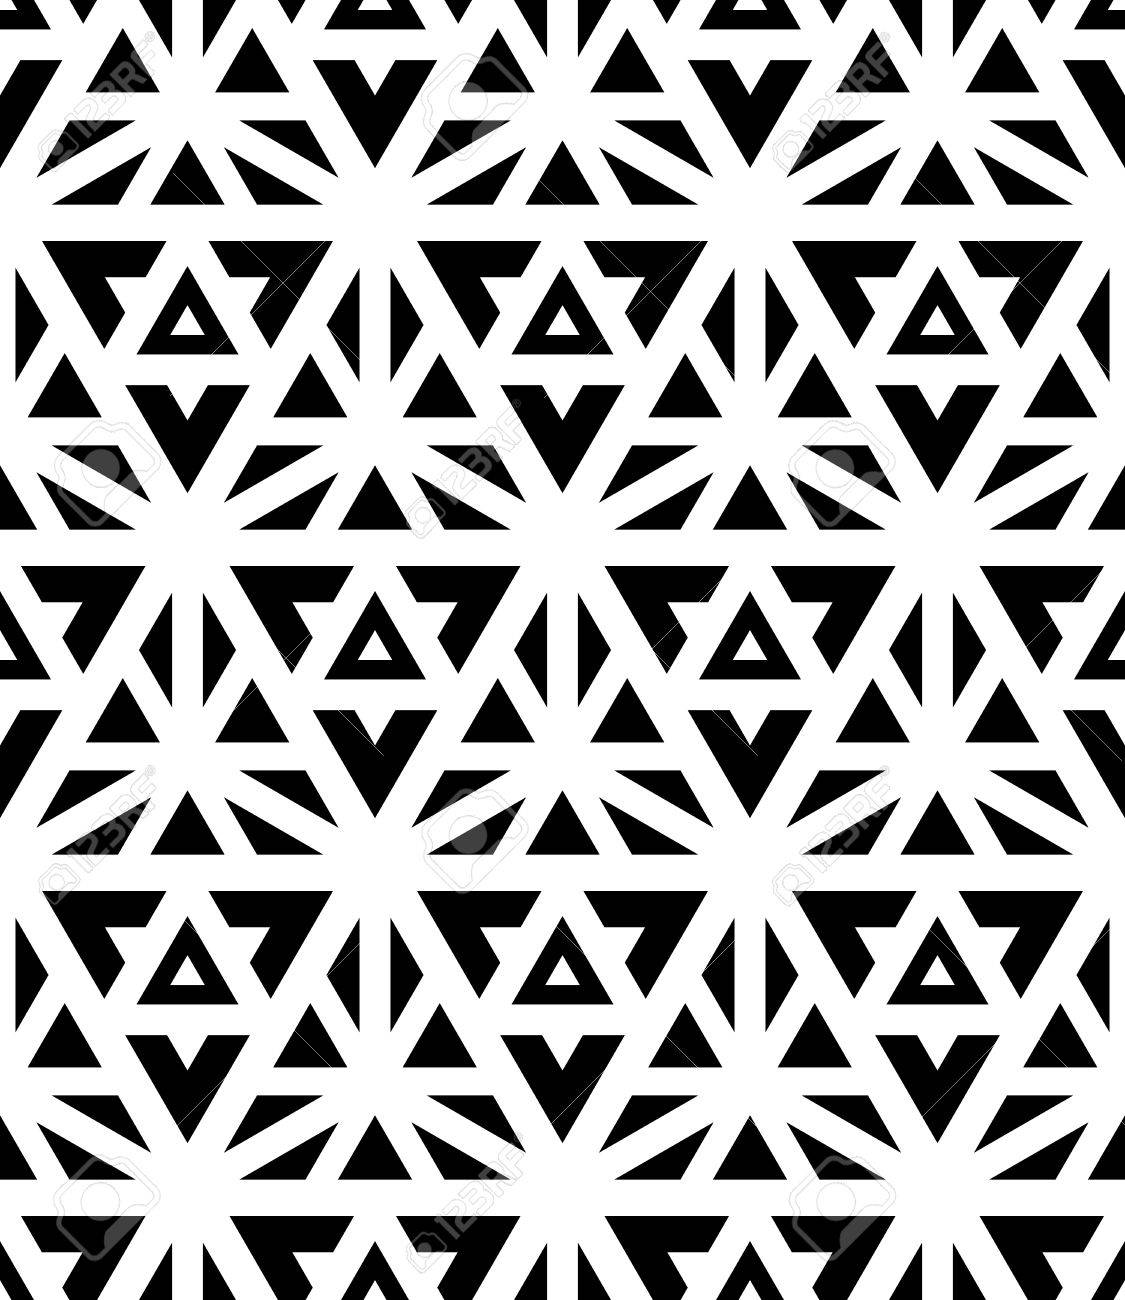 Bed sheet design texture -  Black And White Textile Print Stylish Background Abstract Texture Monochrome Fashion Design Sacred Geometry Bed Sheets Or Pillow Pattern